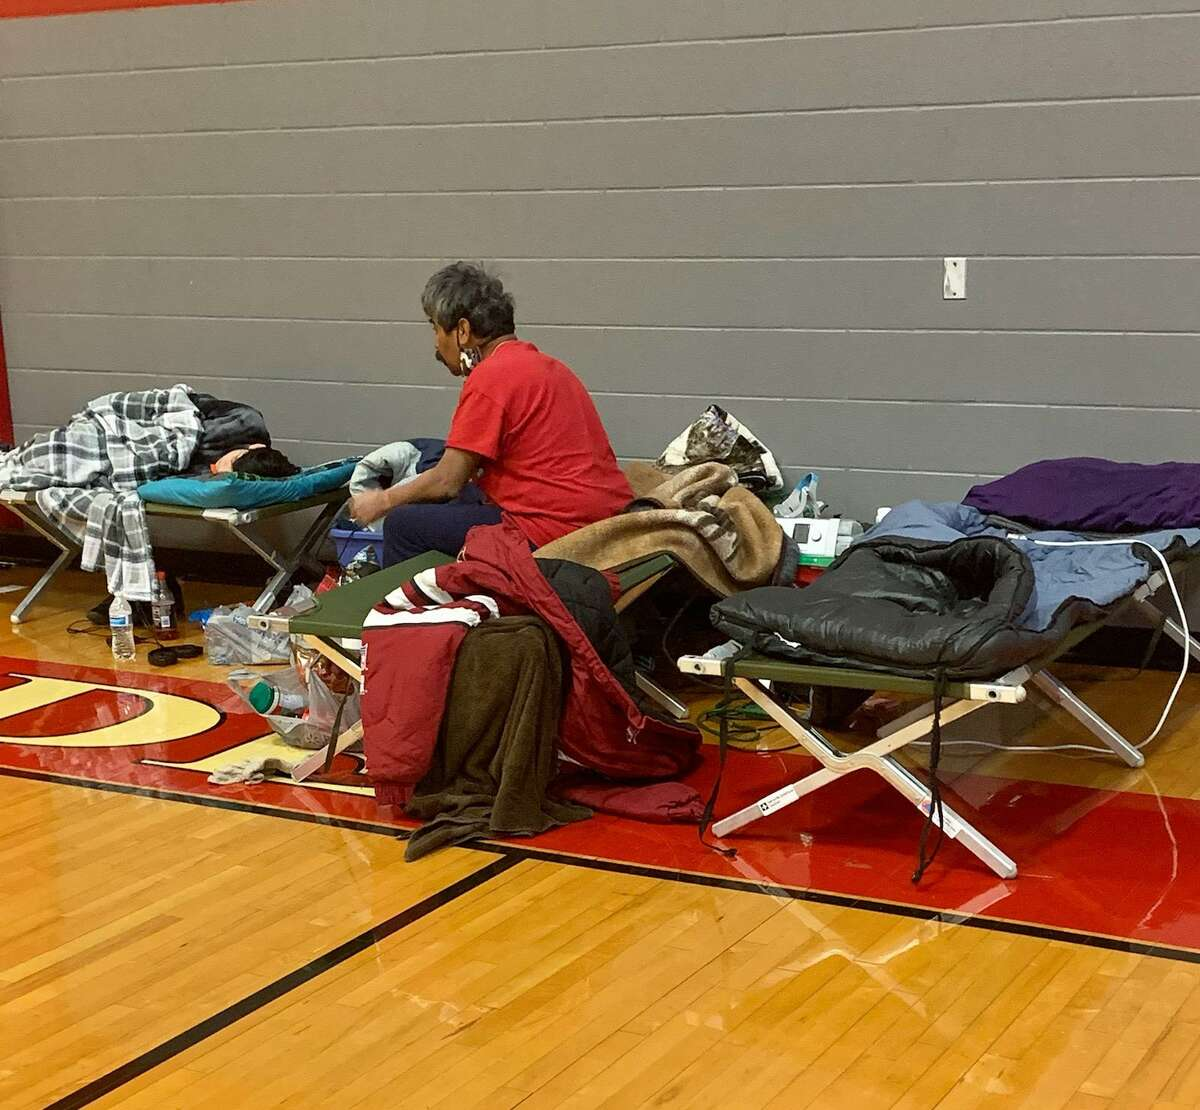 A Converse-area resident sits in the Converse-Judson ISD jointly sponsored warming center at Judson High School on Feb. 18, gathering supplies to take a shower while another person sleeps nearby.